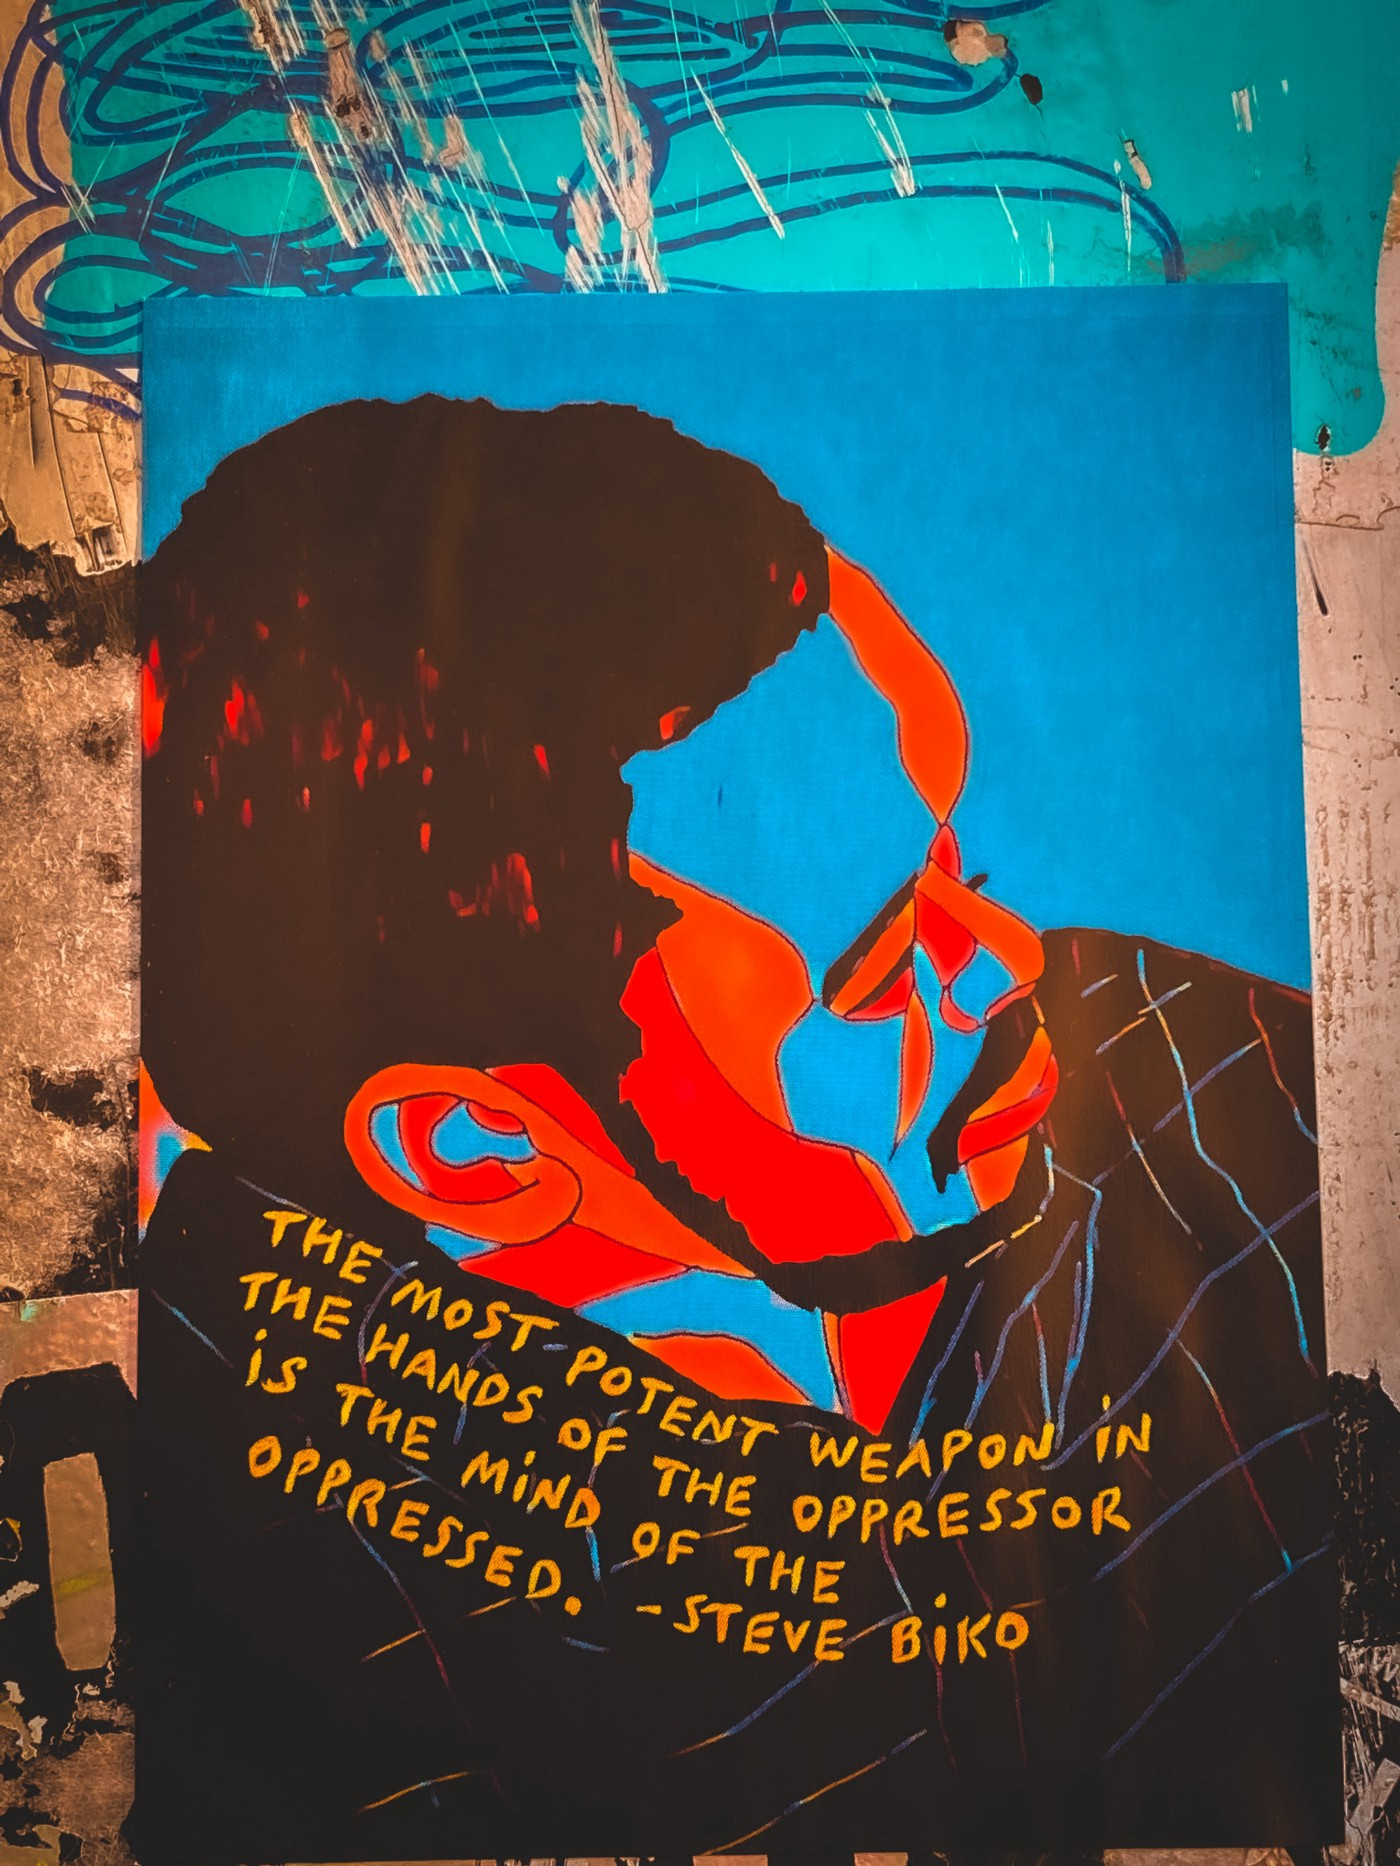 A Poster on the wall of a man with a red and blue painted face.